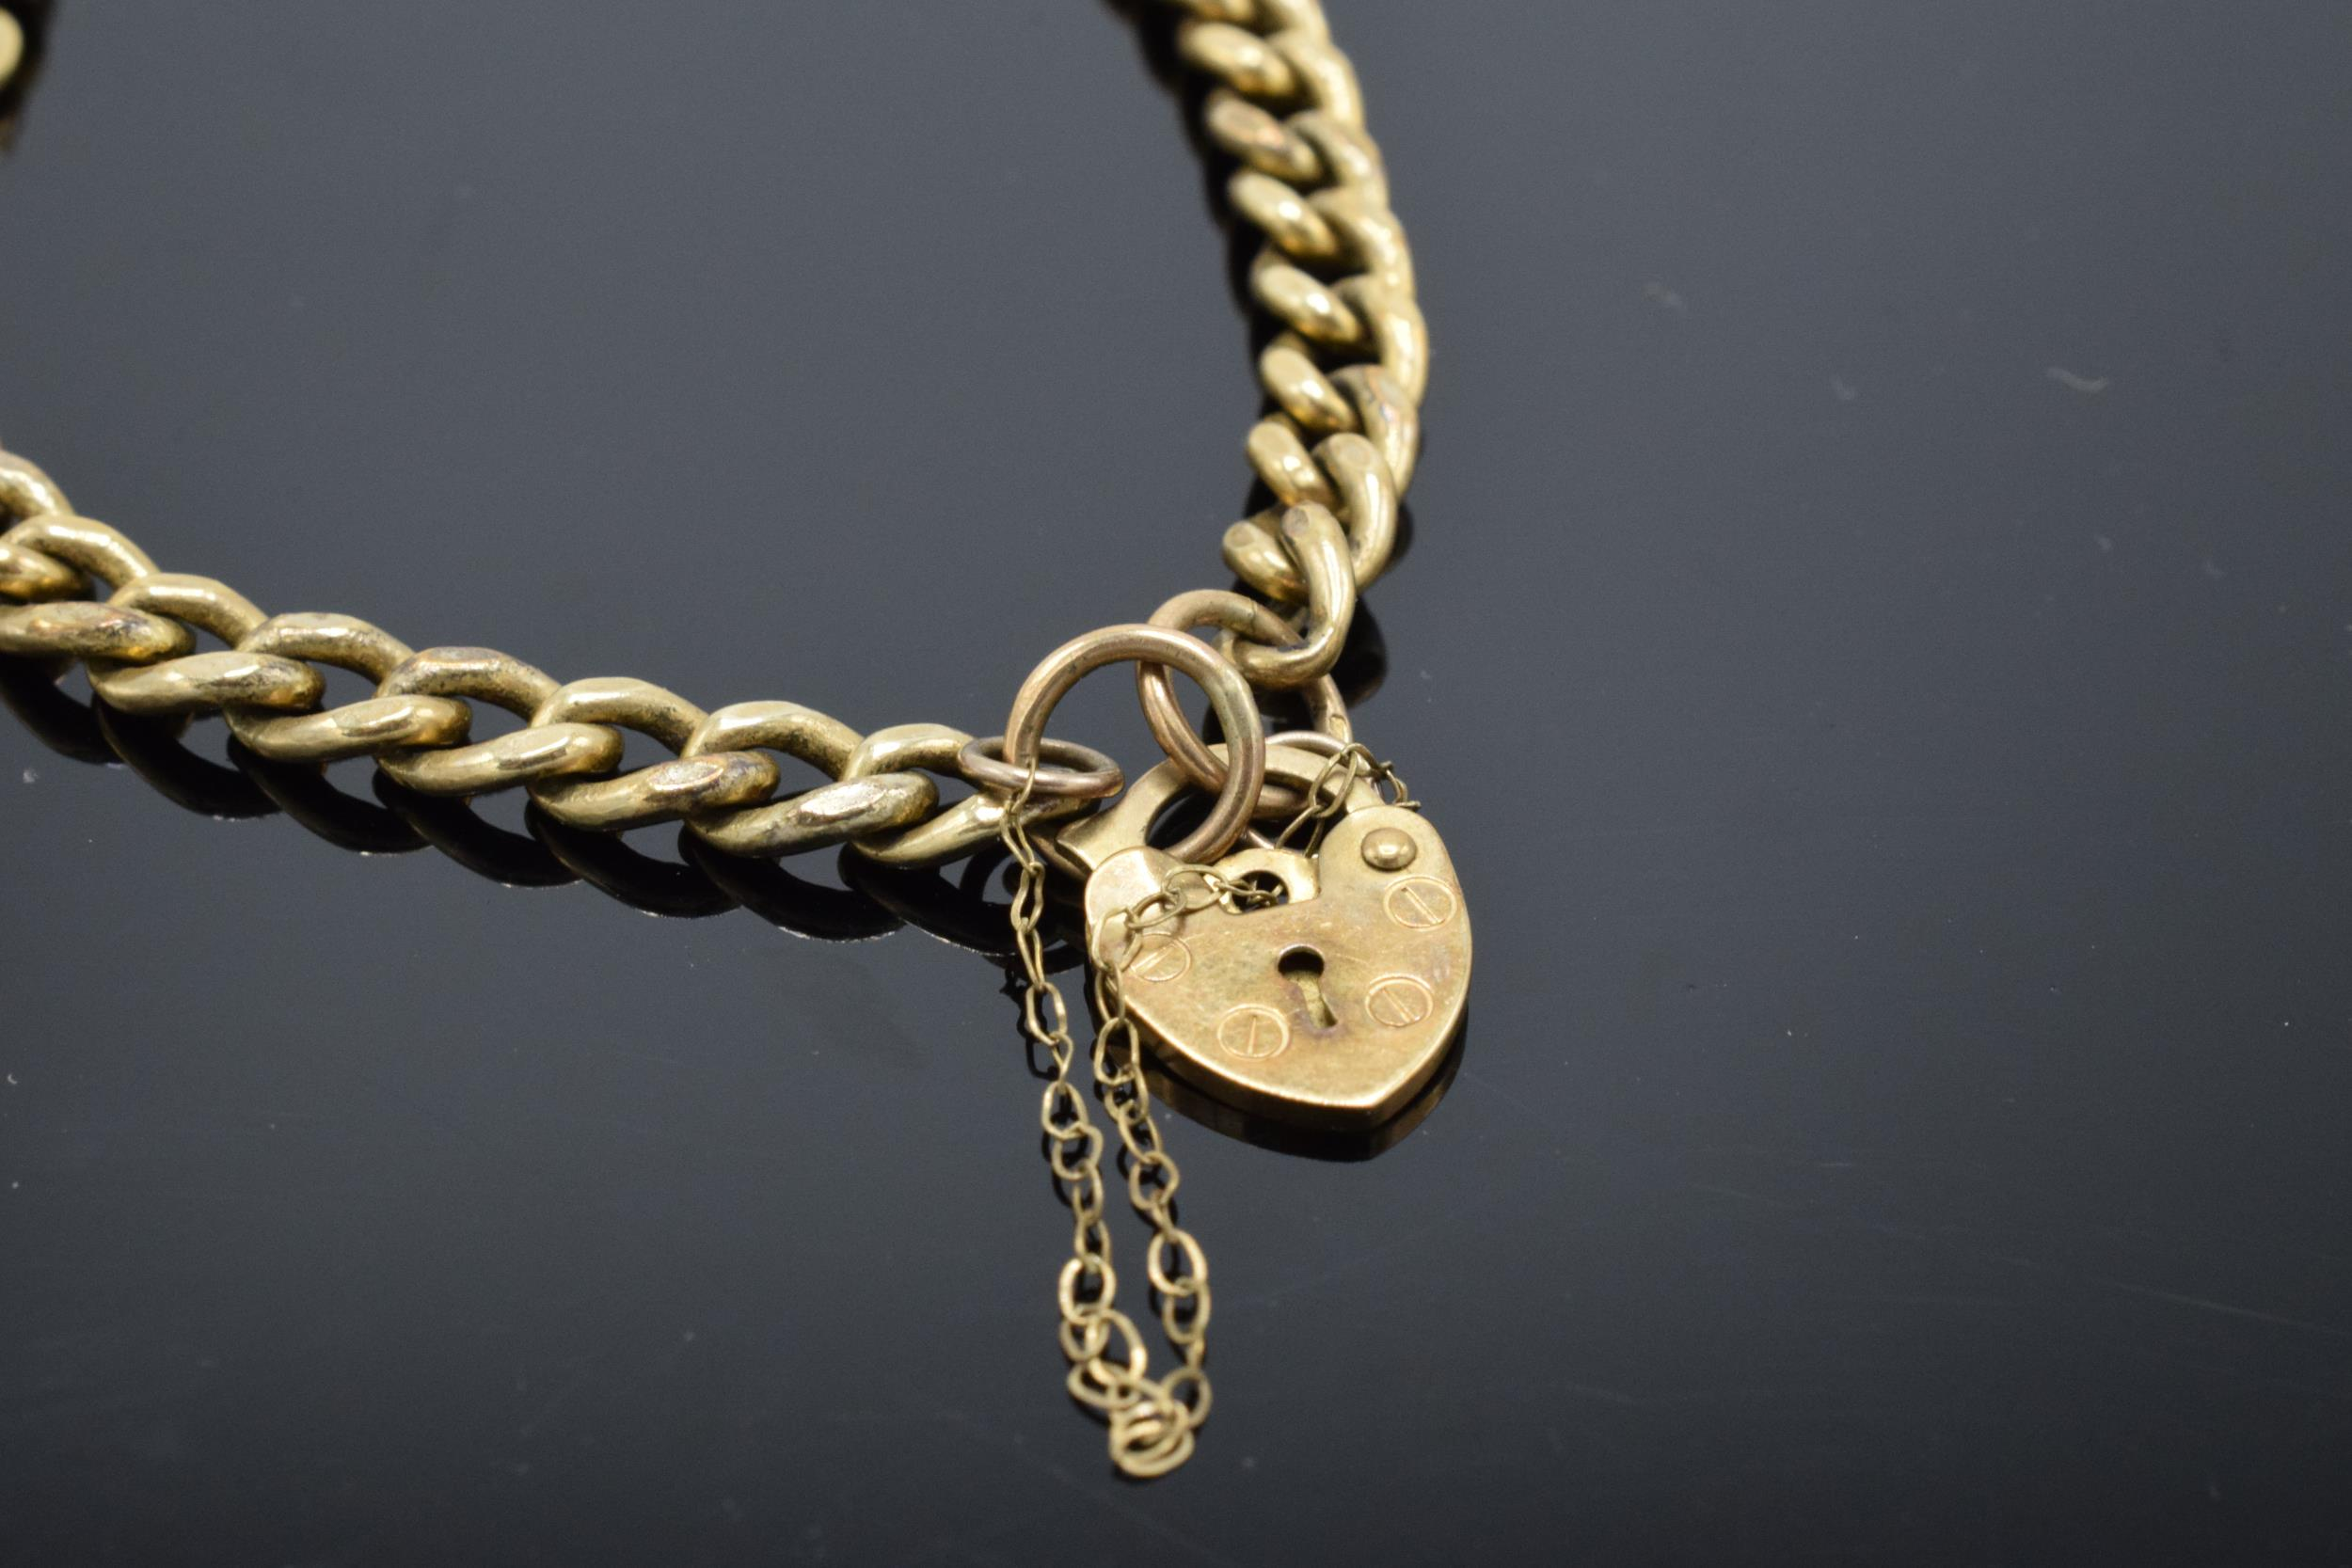 9ct gold hollow link bracelet with some damage 4.7g - Image 2 of 3